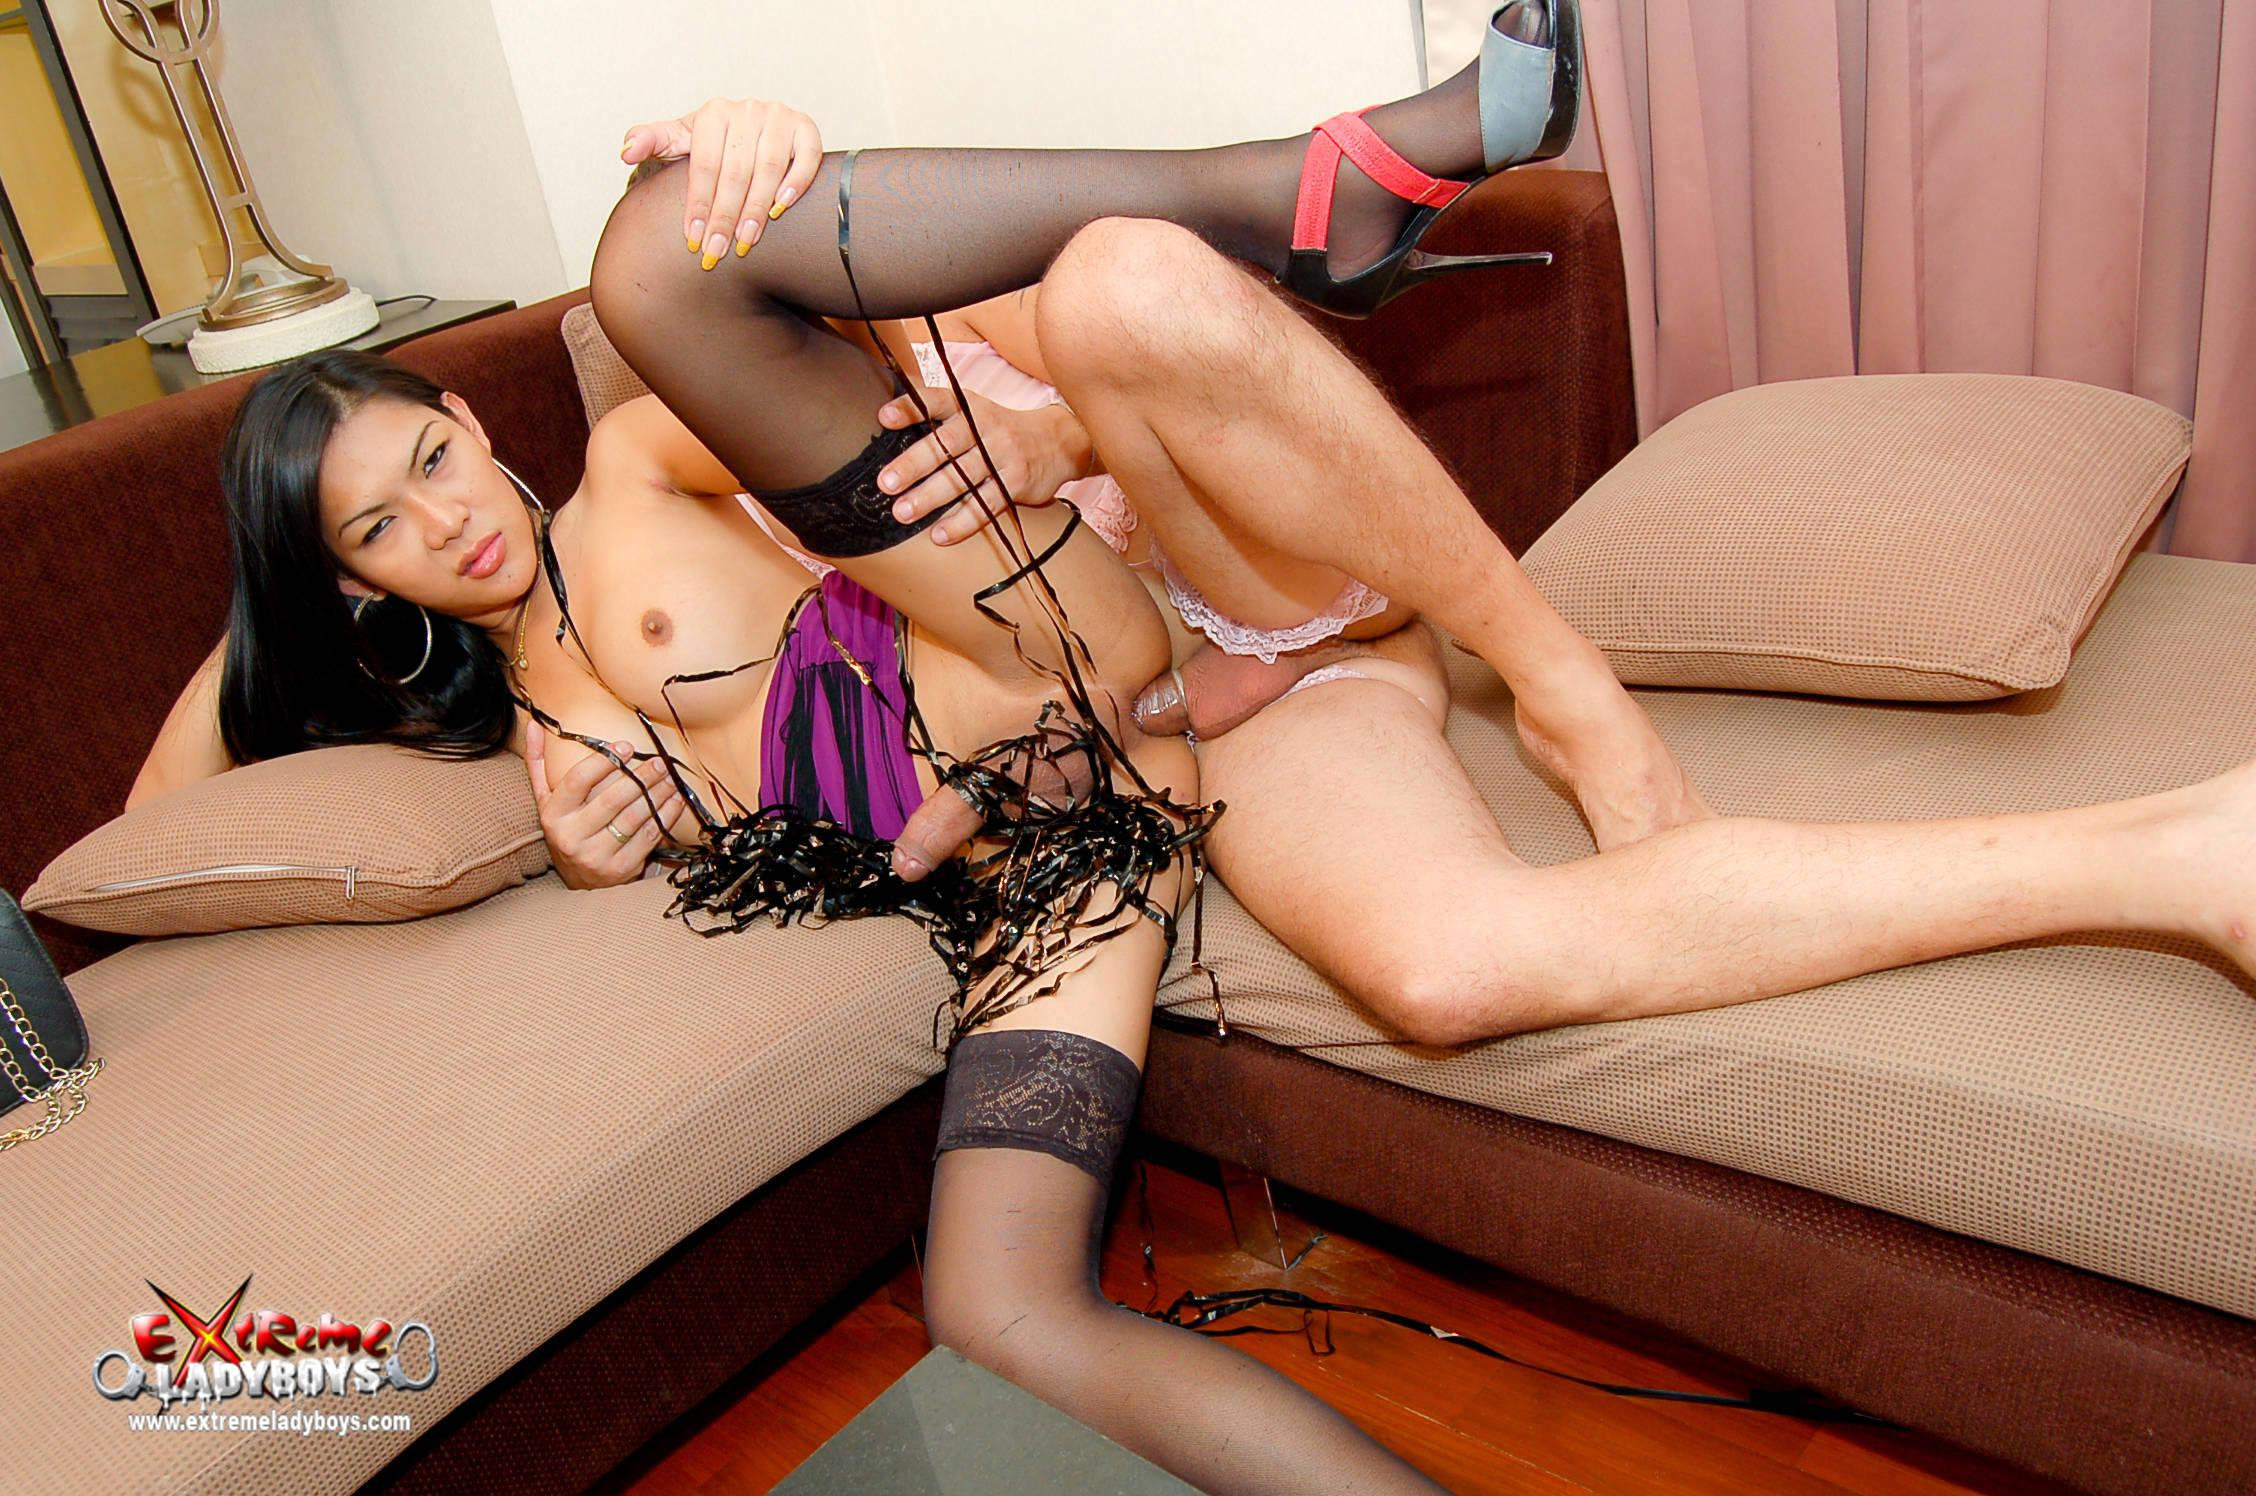 Shemale Bitch Sits On Dildo